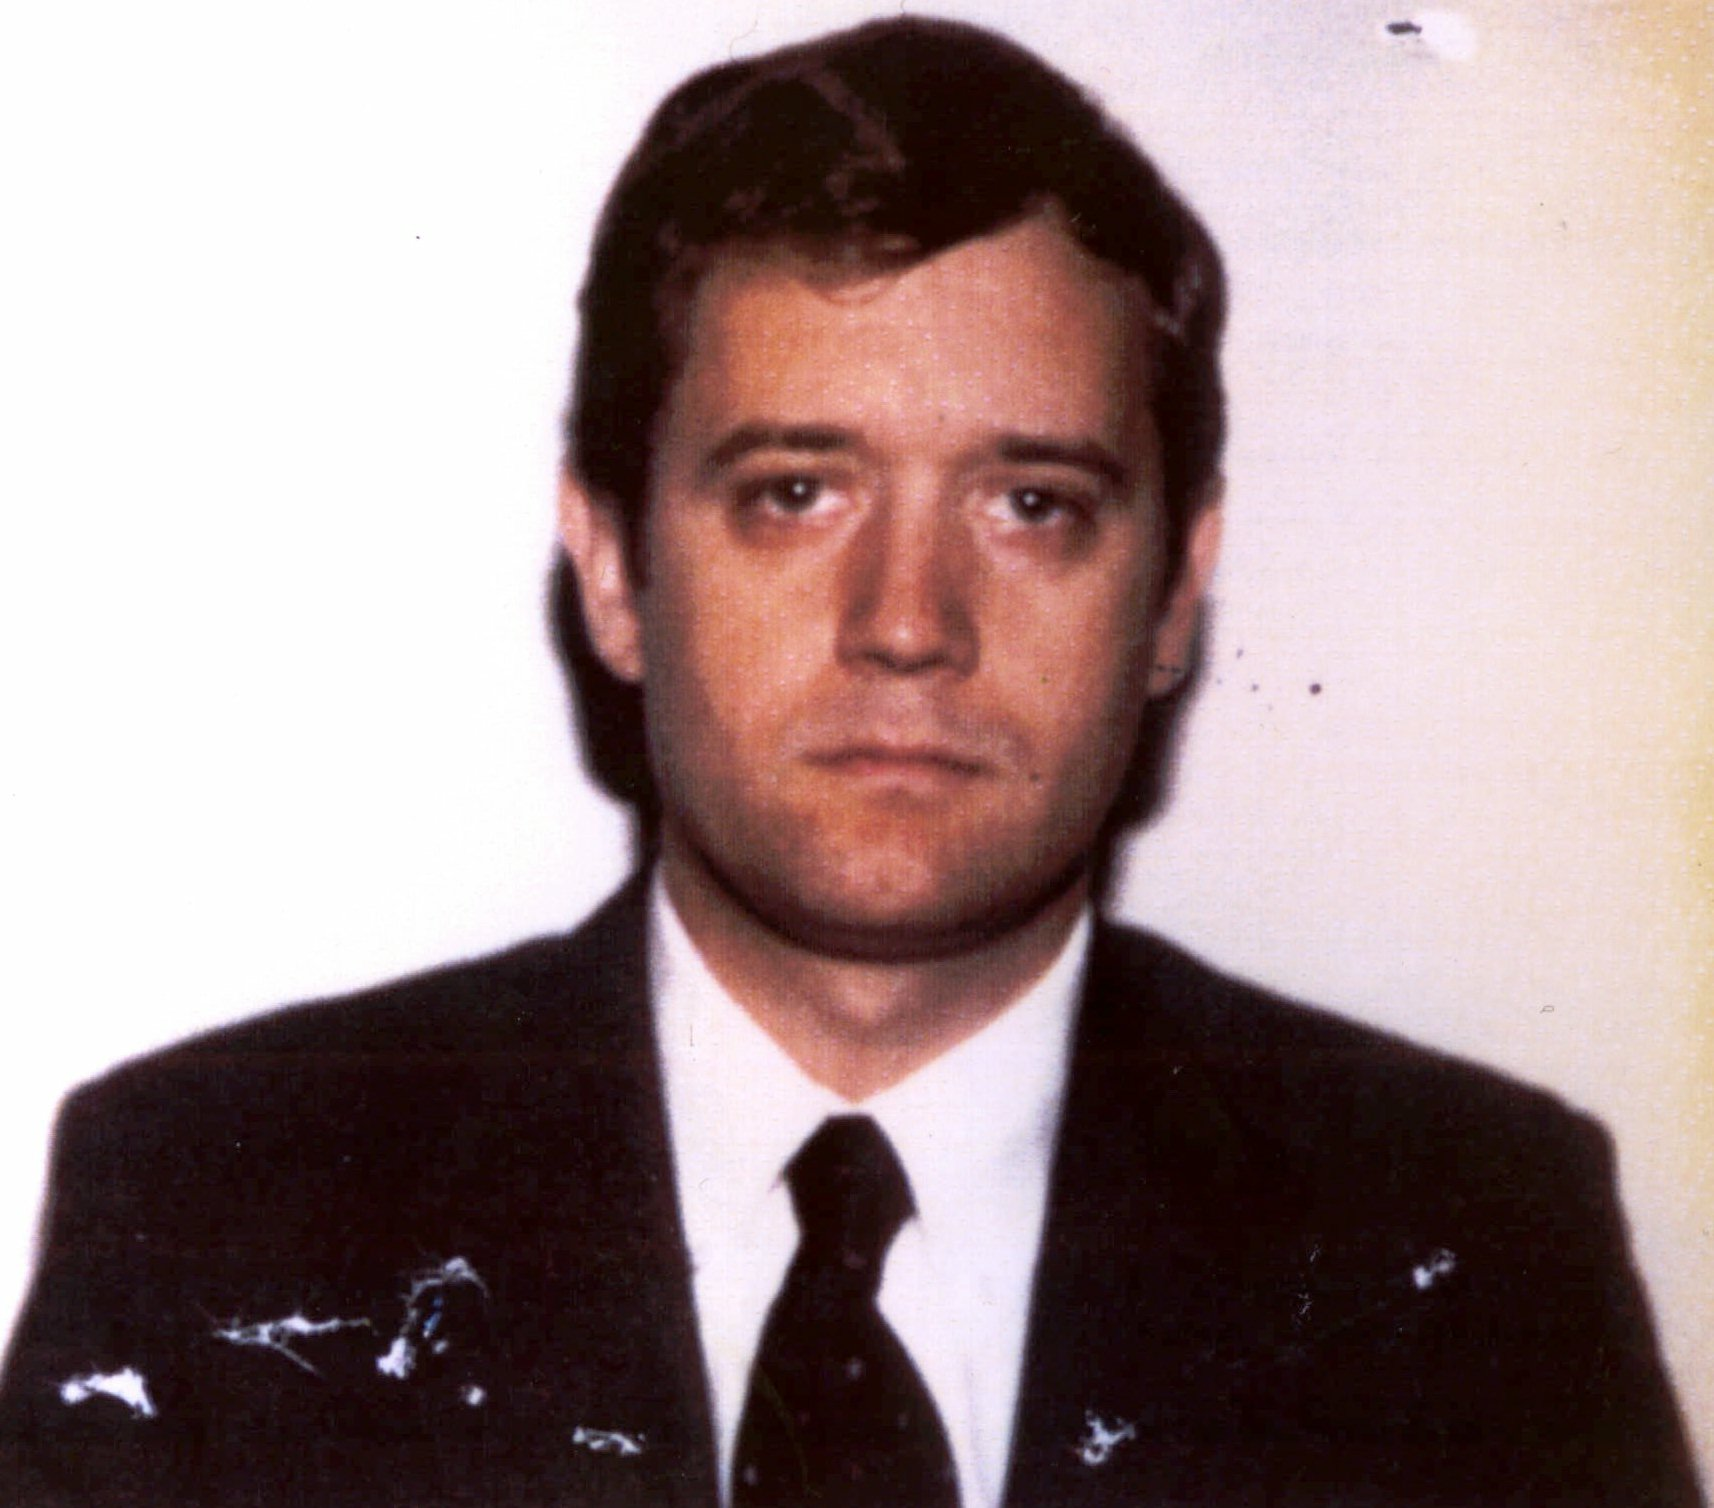 Between 1987 and 1992, Earl Edwin Pitts gave Soviet Union agents as much information as he could—from national defense documents to medical records of vulnerable agents for possible recruitment. He even admitted to giving KGB agents a key and identification badge so they could make copies and gain access to facilities in Quantico, Va. Pitts was sentenced to 27 years in prison in 1997.